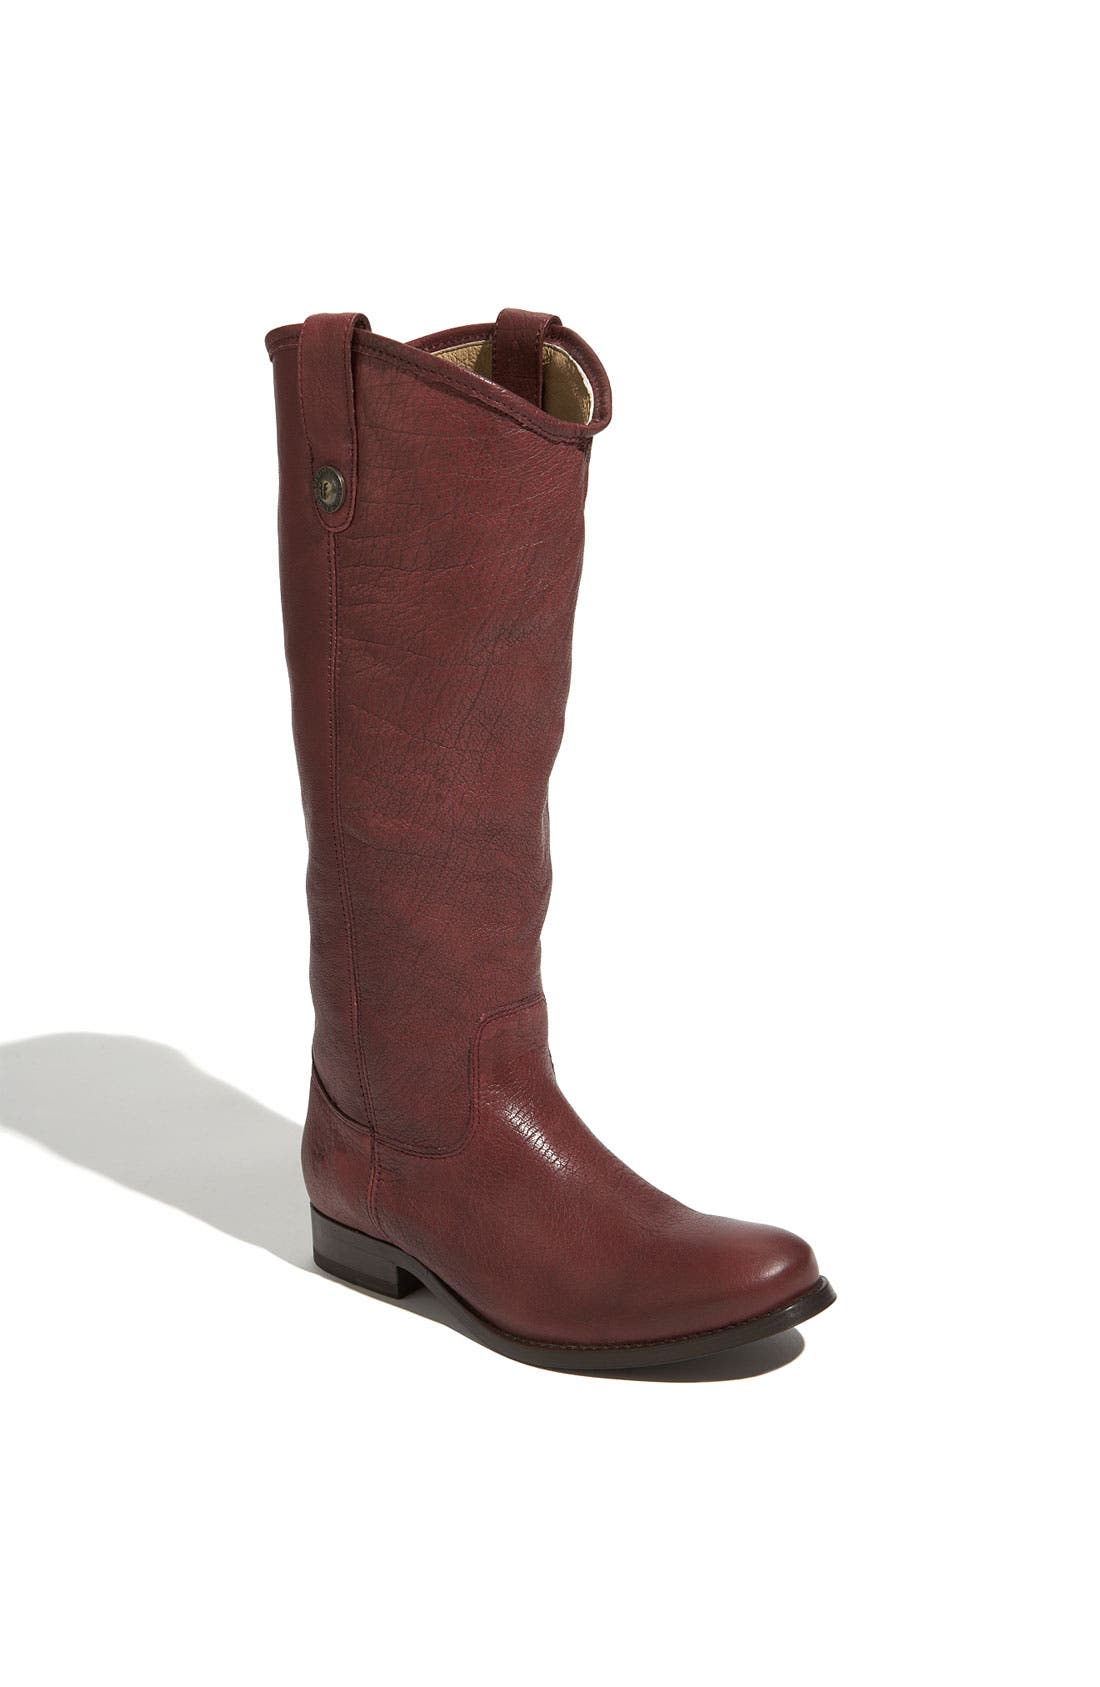 'Melissa Button' Leather Riding Boot,                             Main thumbnail 31, color,